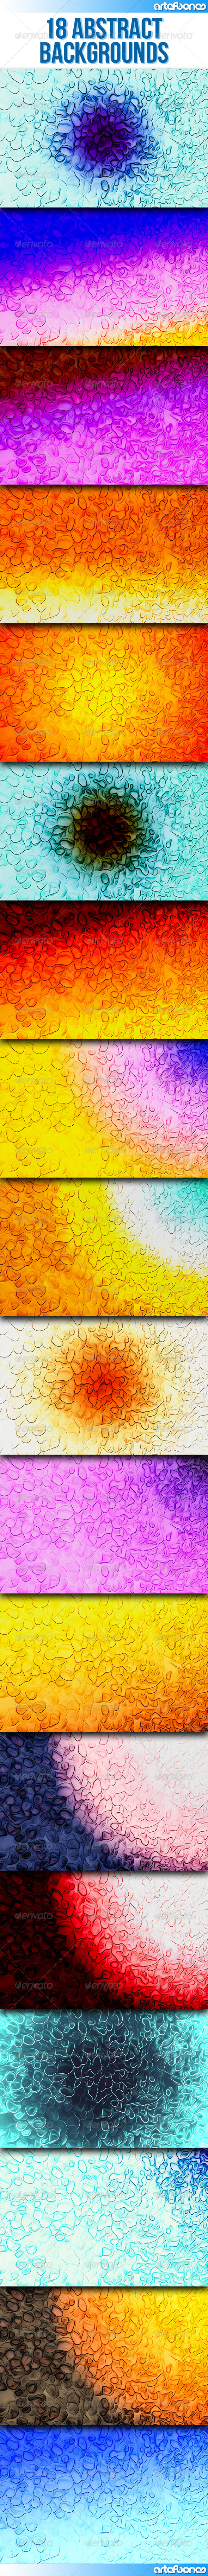 GraphicRiver 18 Abstract Backgrounds Part 2 8005963